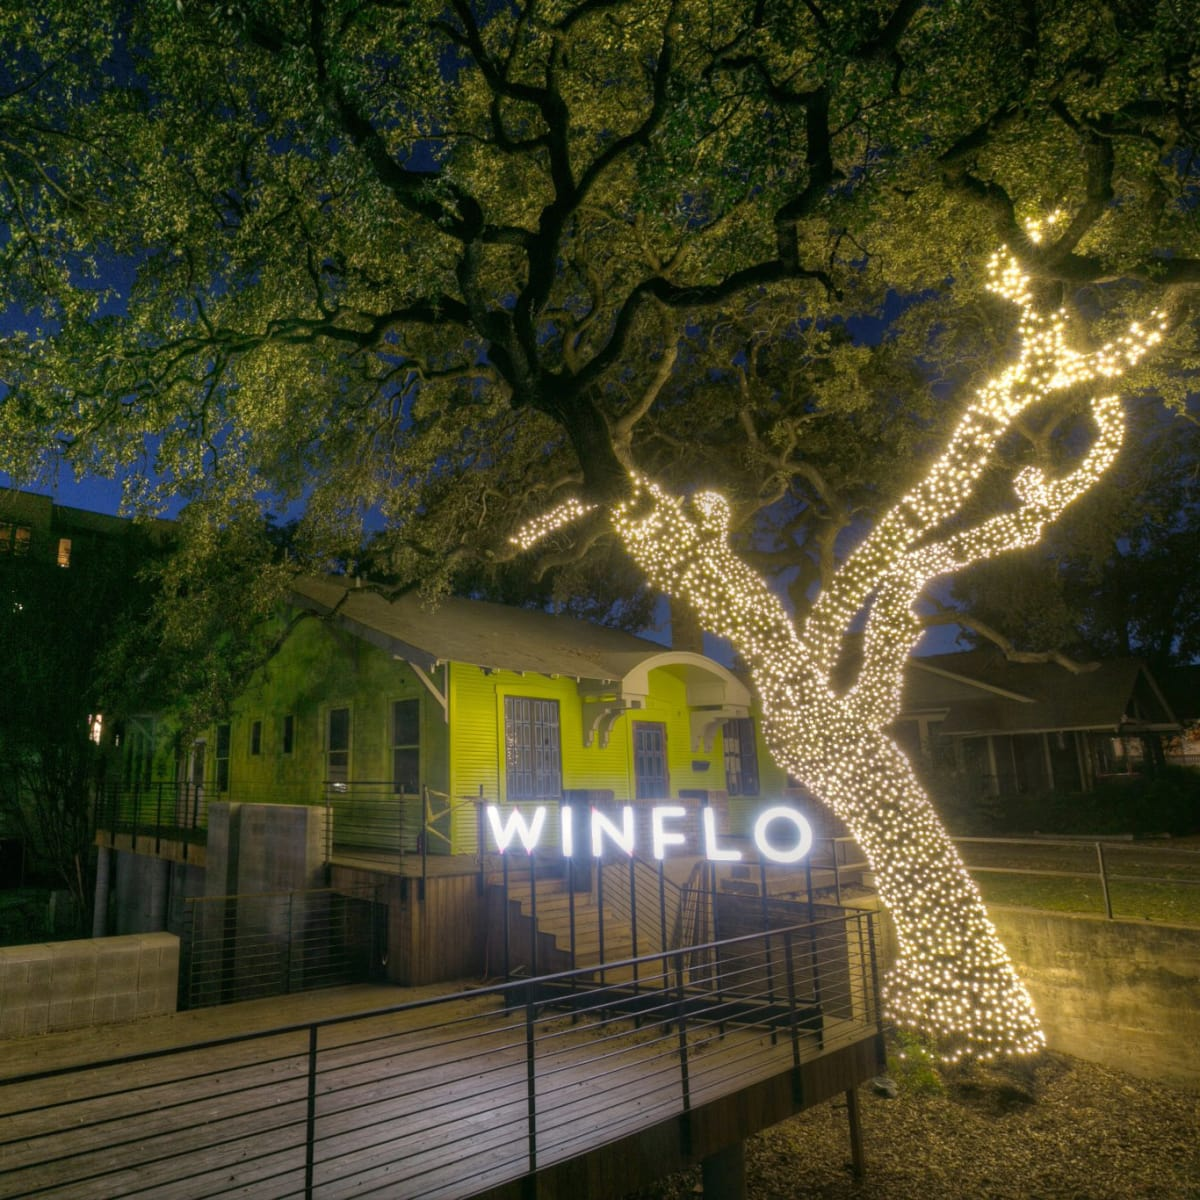 Austin Photo: Restaurants: winflo